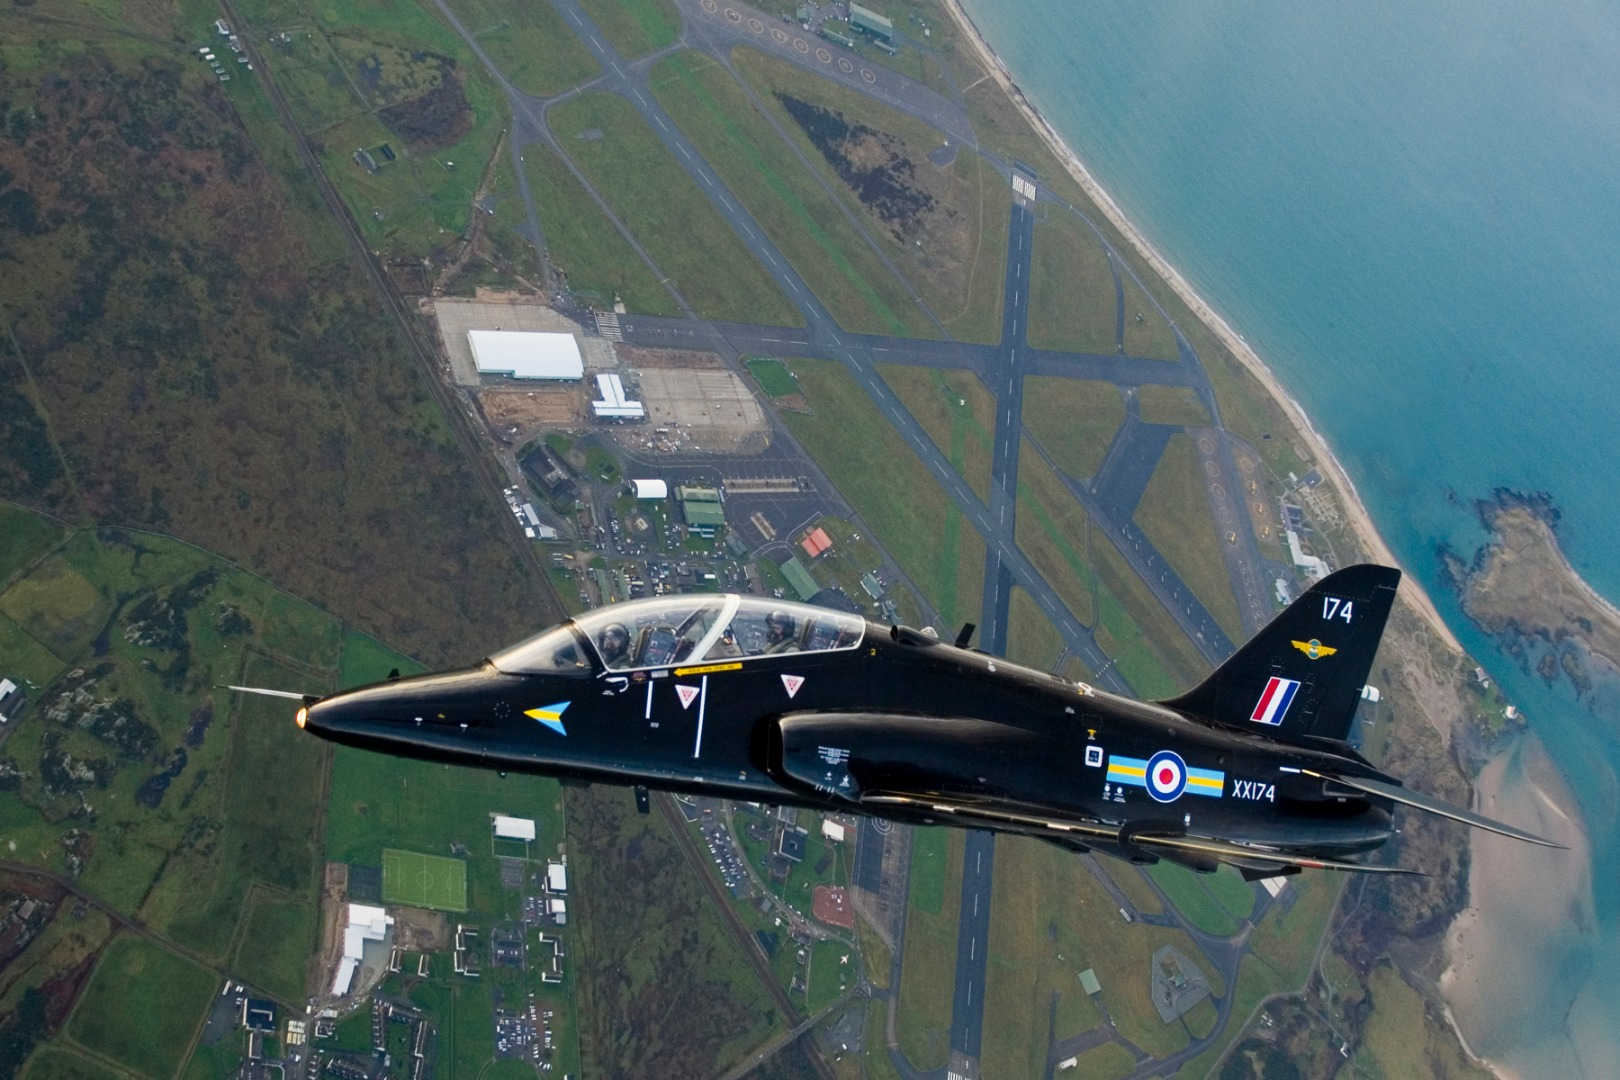 005Hawk_Aircraft_over_RAF_Valley_MOD_45151330.jpg